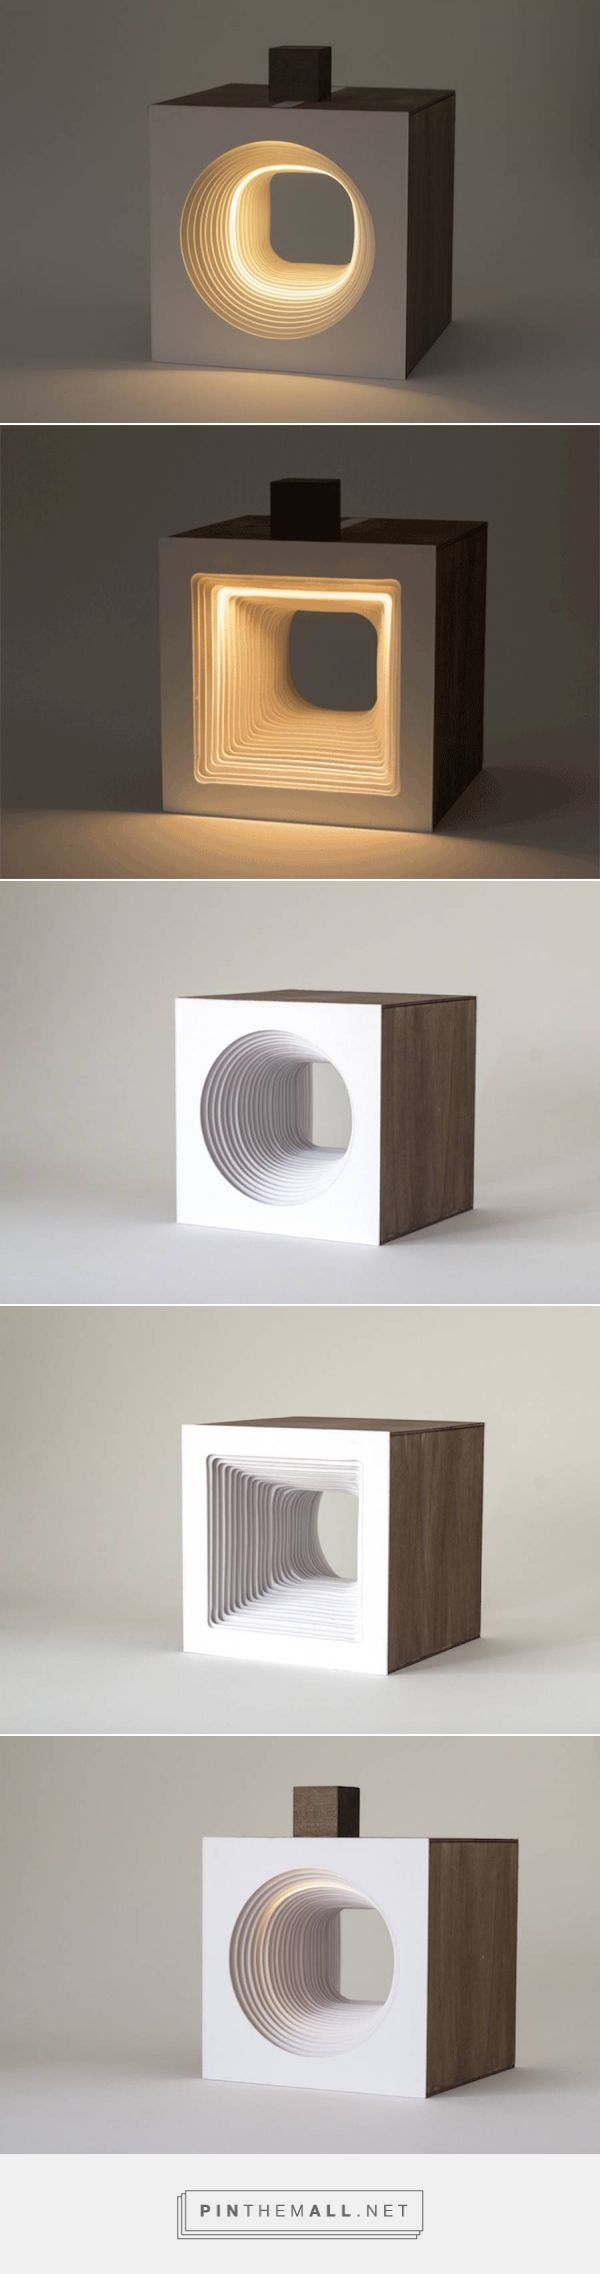 Sculptural Cube with Flowing Light \u2013 Fubiz Media - created via https://pinthemall.net